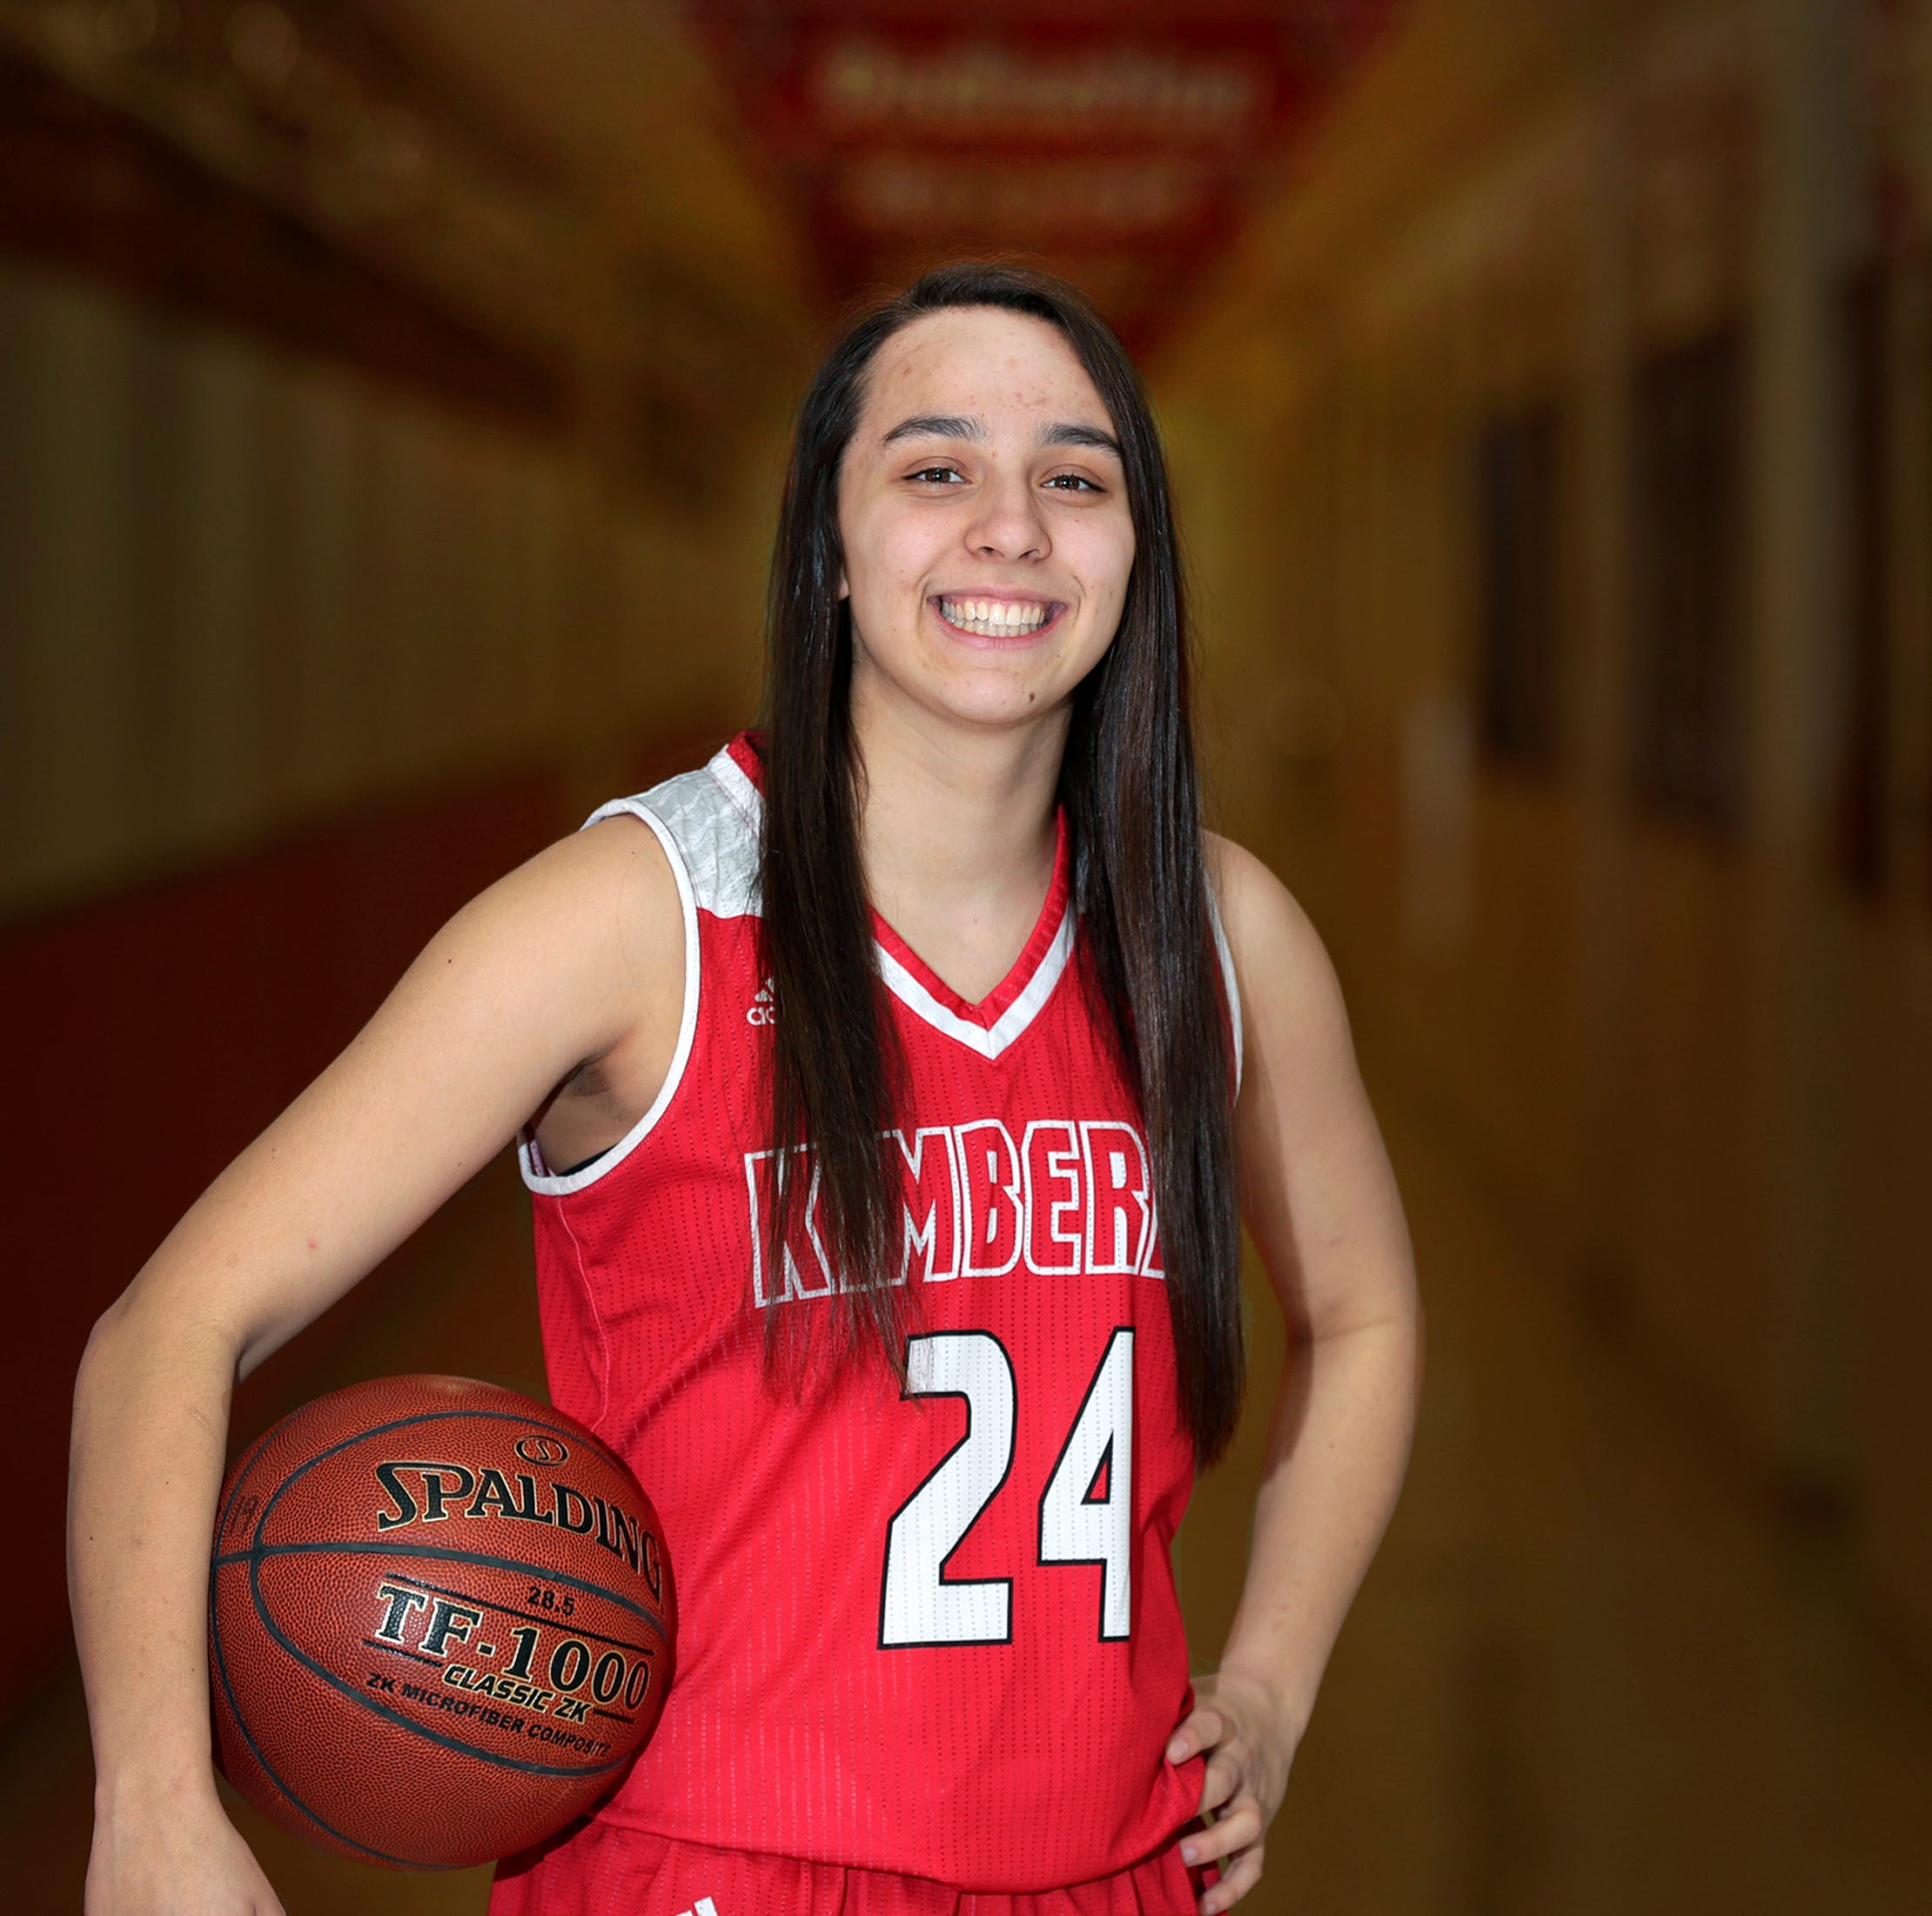 Dechant earns Post-Crescent girls basketball player of the year honor